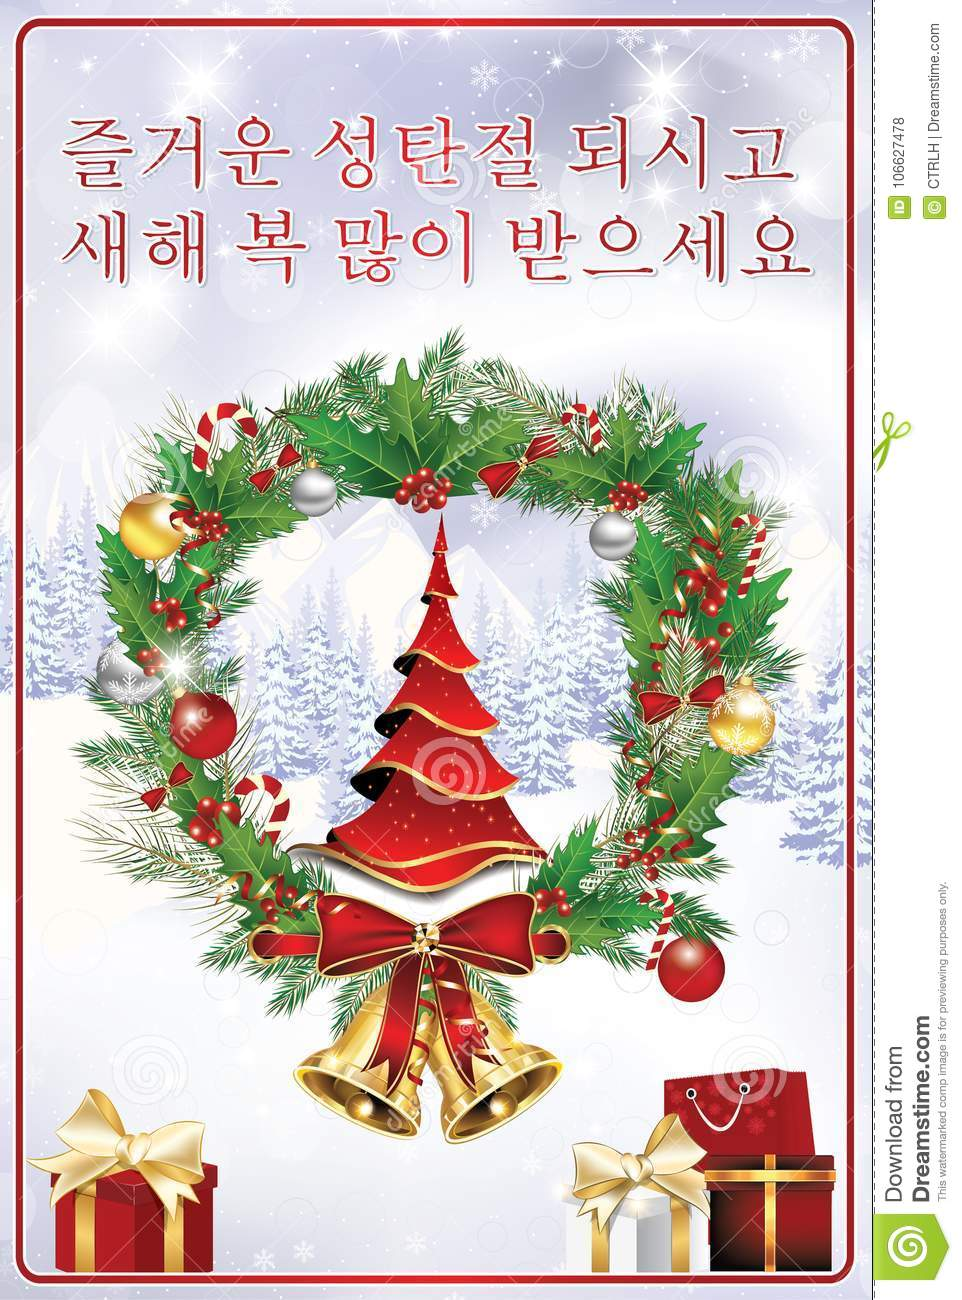 Korean greeting card merry christmas and happy new year for the download korean greeting card merry christmas and happy new year for the new year m4hsunfo